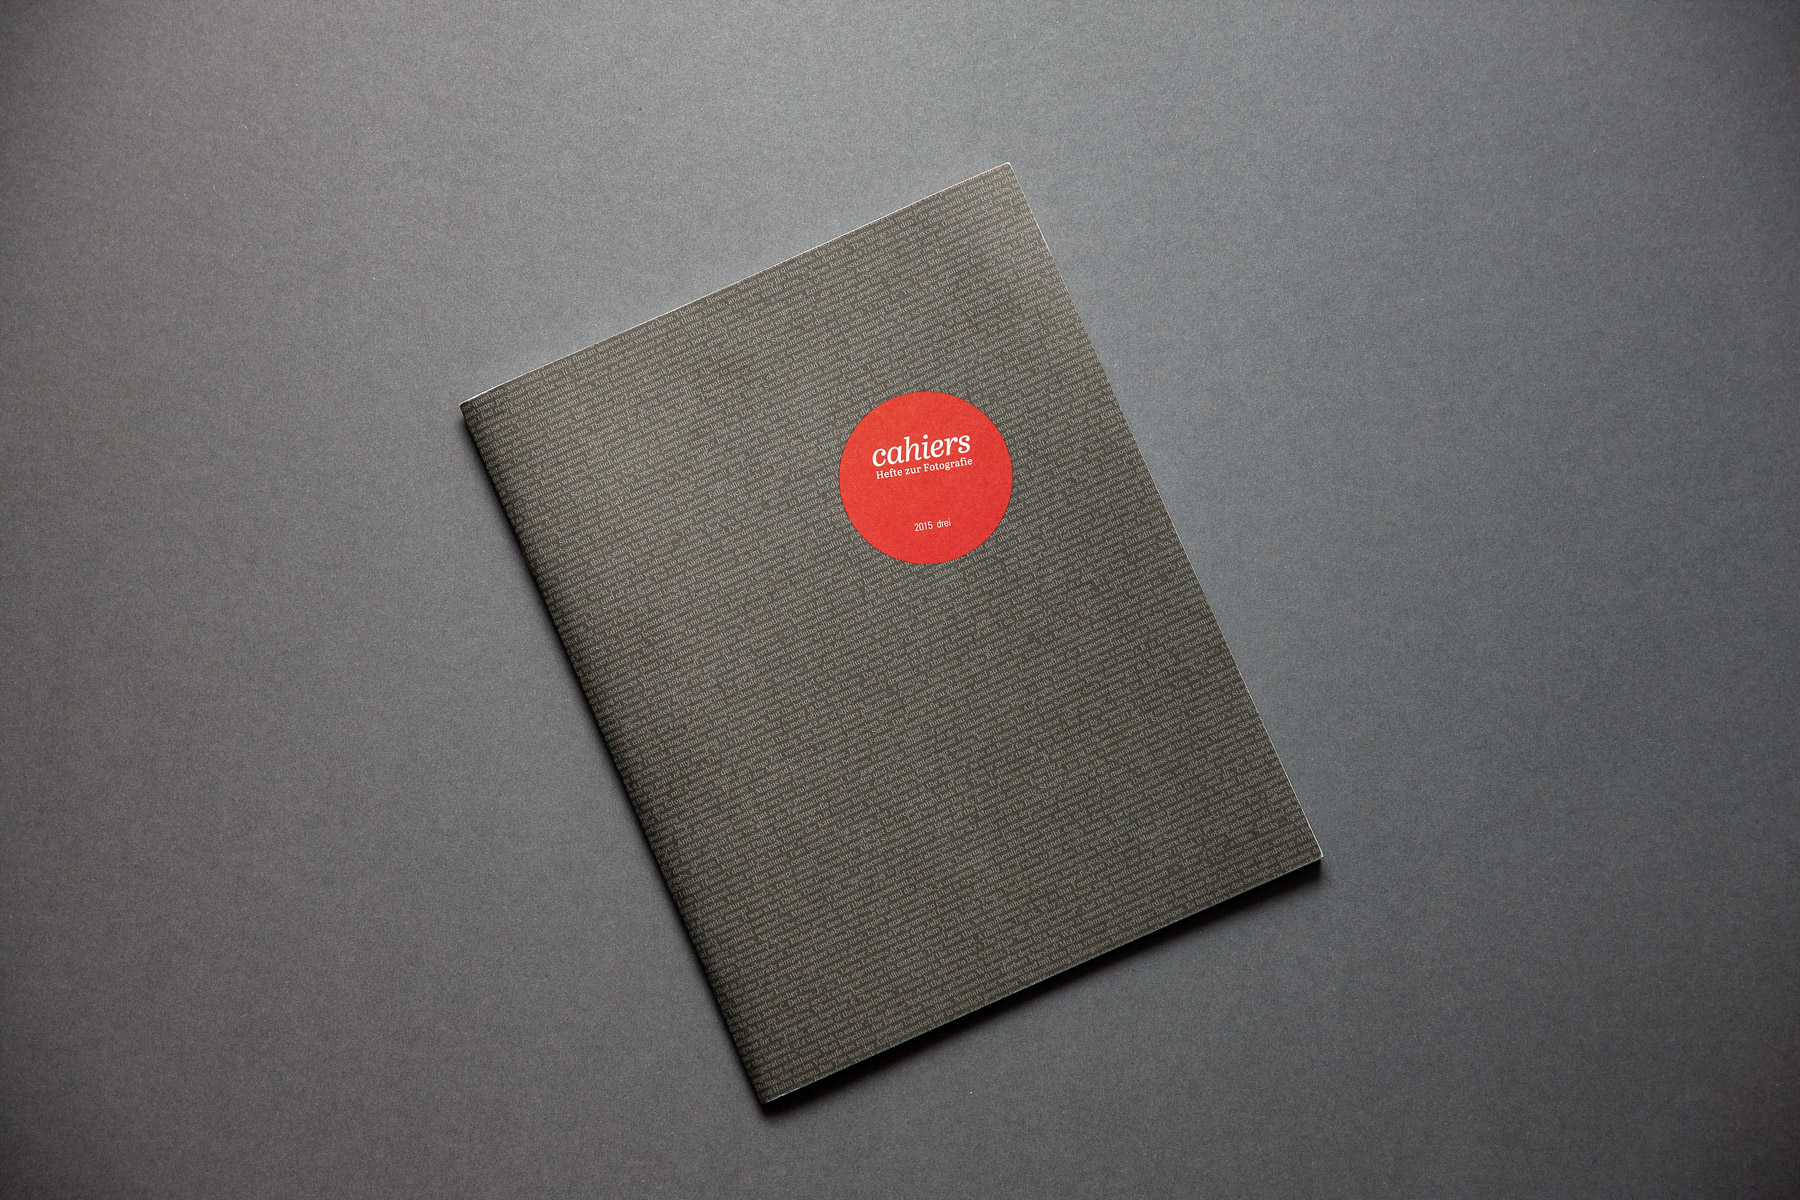 Cahiers #3 Cover full